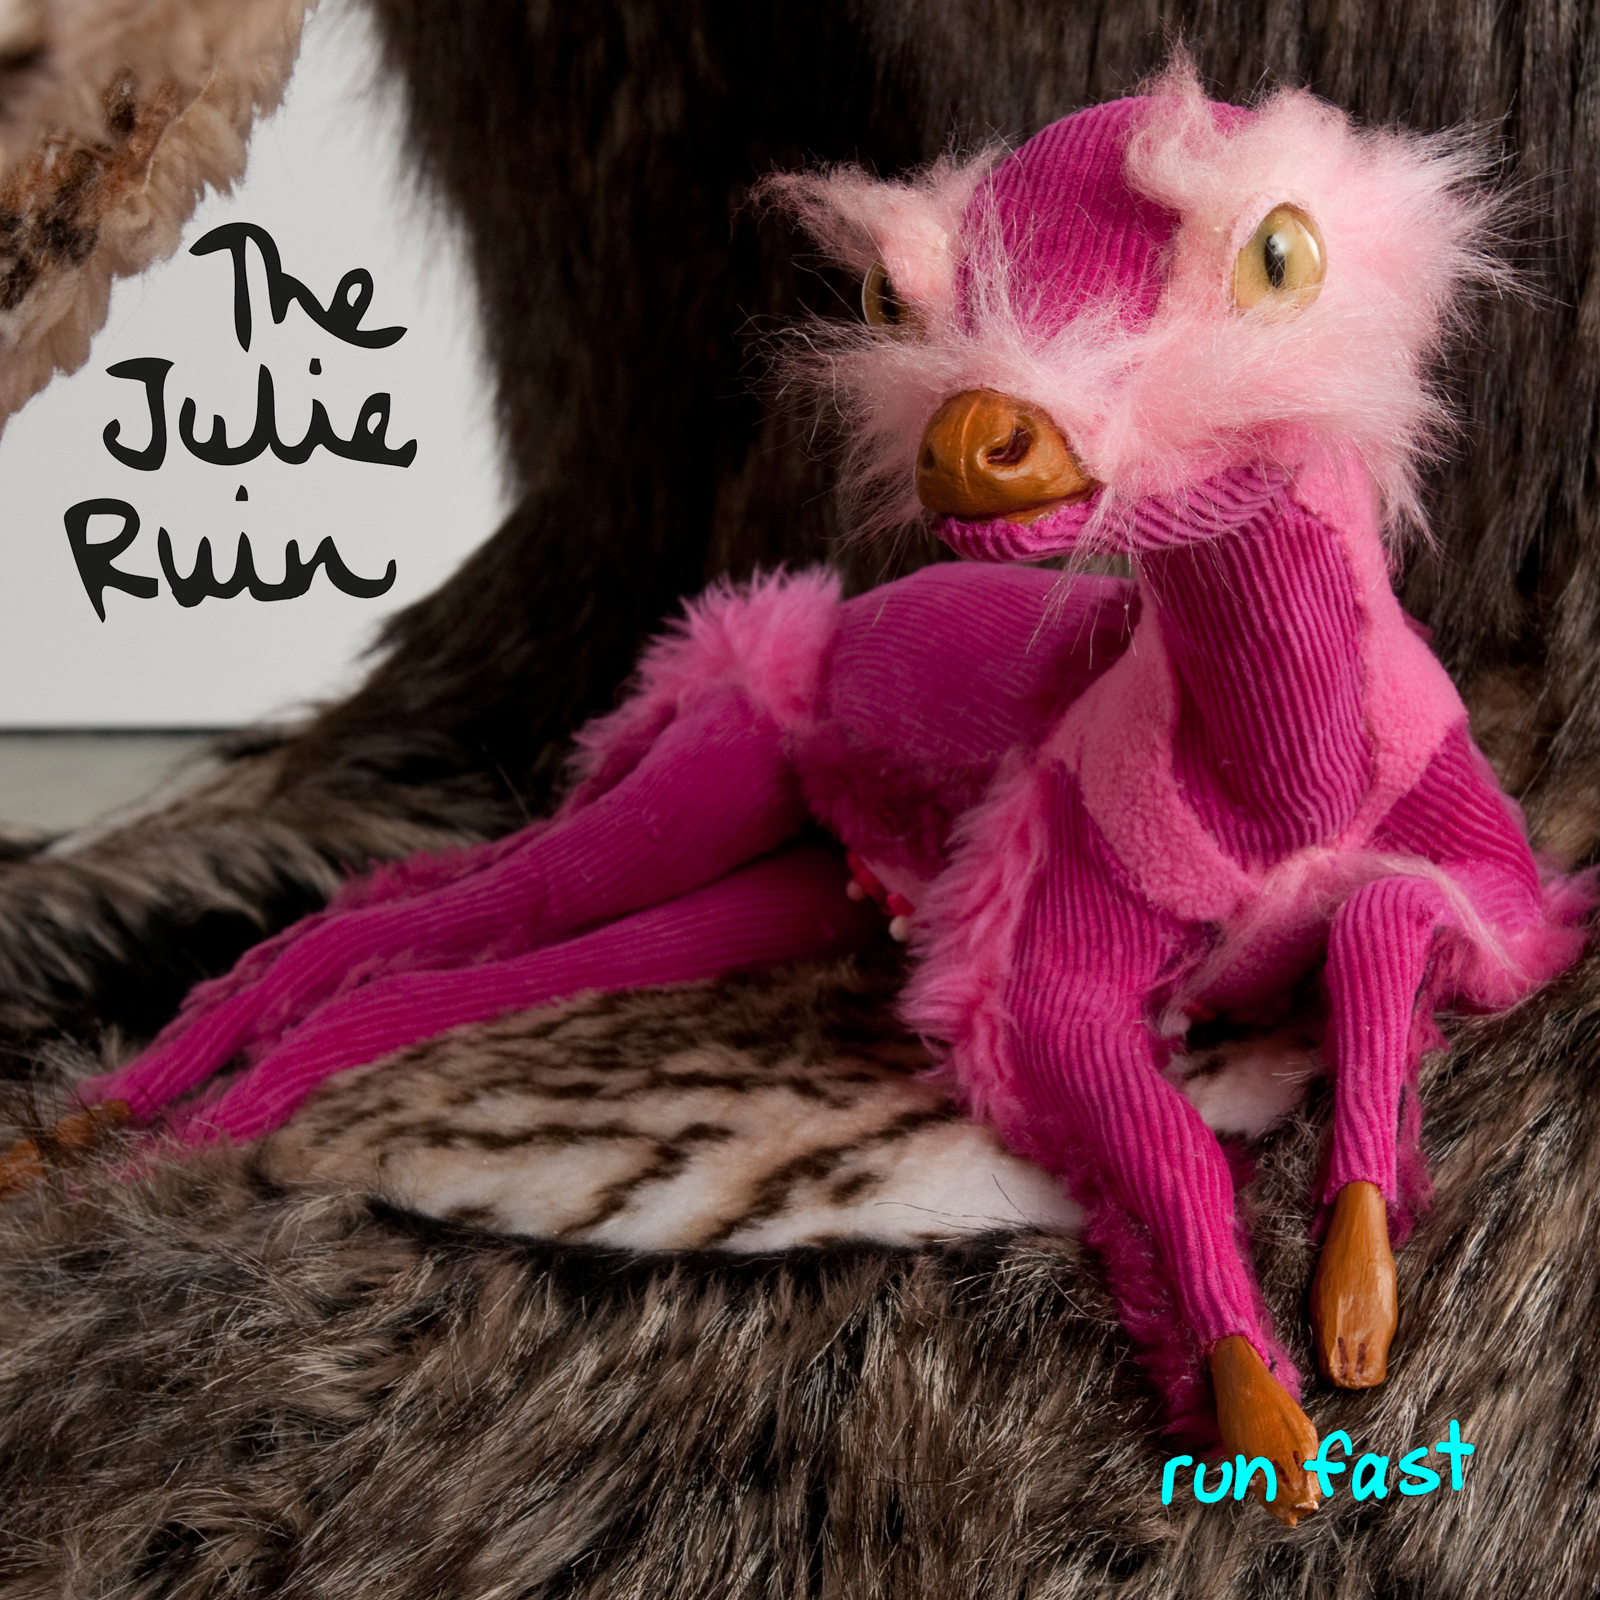 The Julie Ruin - Run Fast (LP) - TJR Records, 2013Click here to purchaseClick image to listen to samples